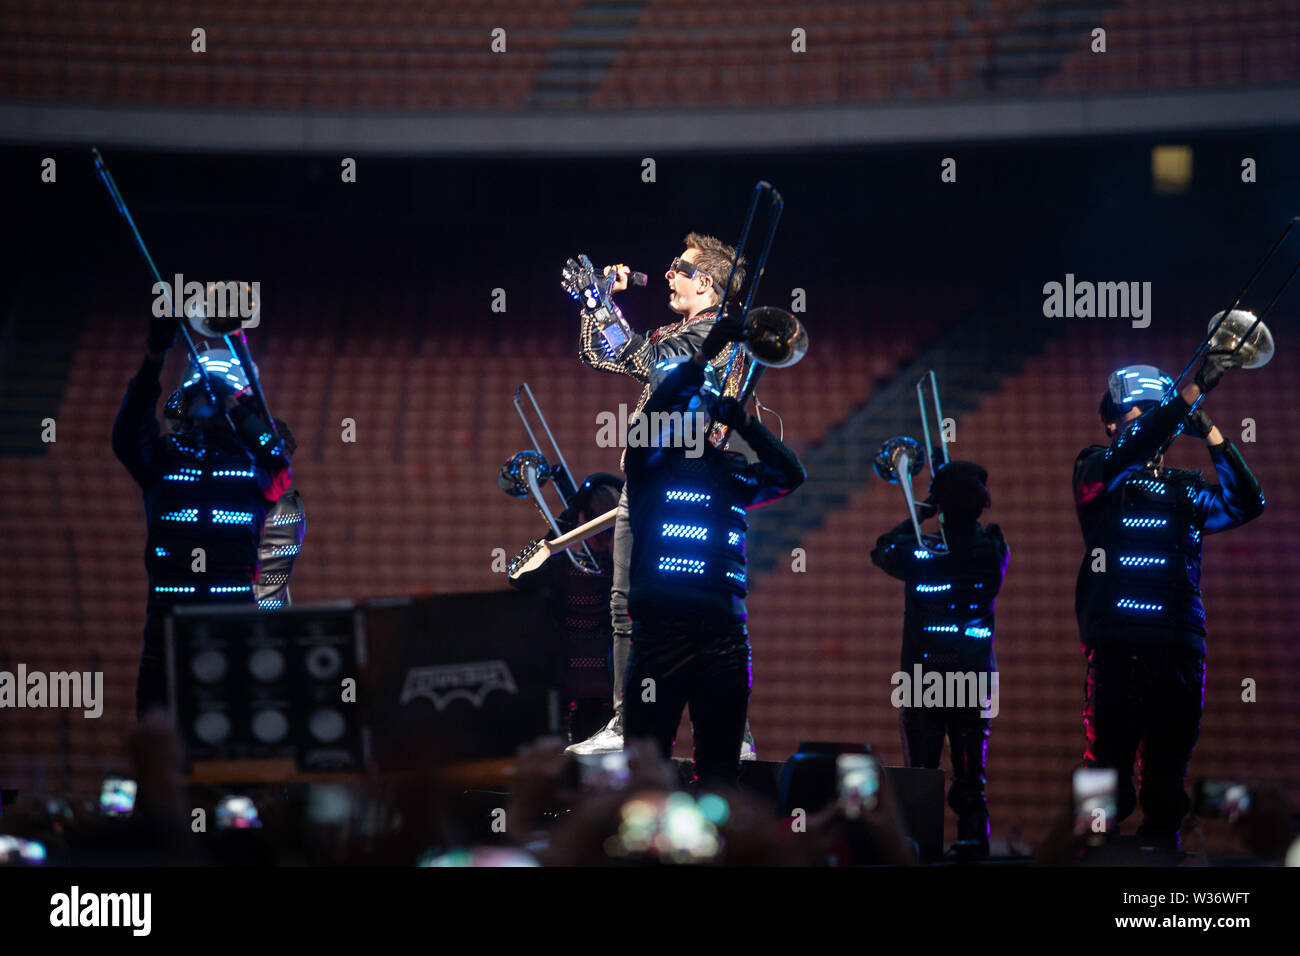 Milan, 12th of July. MUSE performs live @ Stadio Giuseppe Meazza di San Siro, Milano. Copyright Davide Merli | Alamy Stock Photo